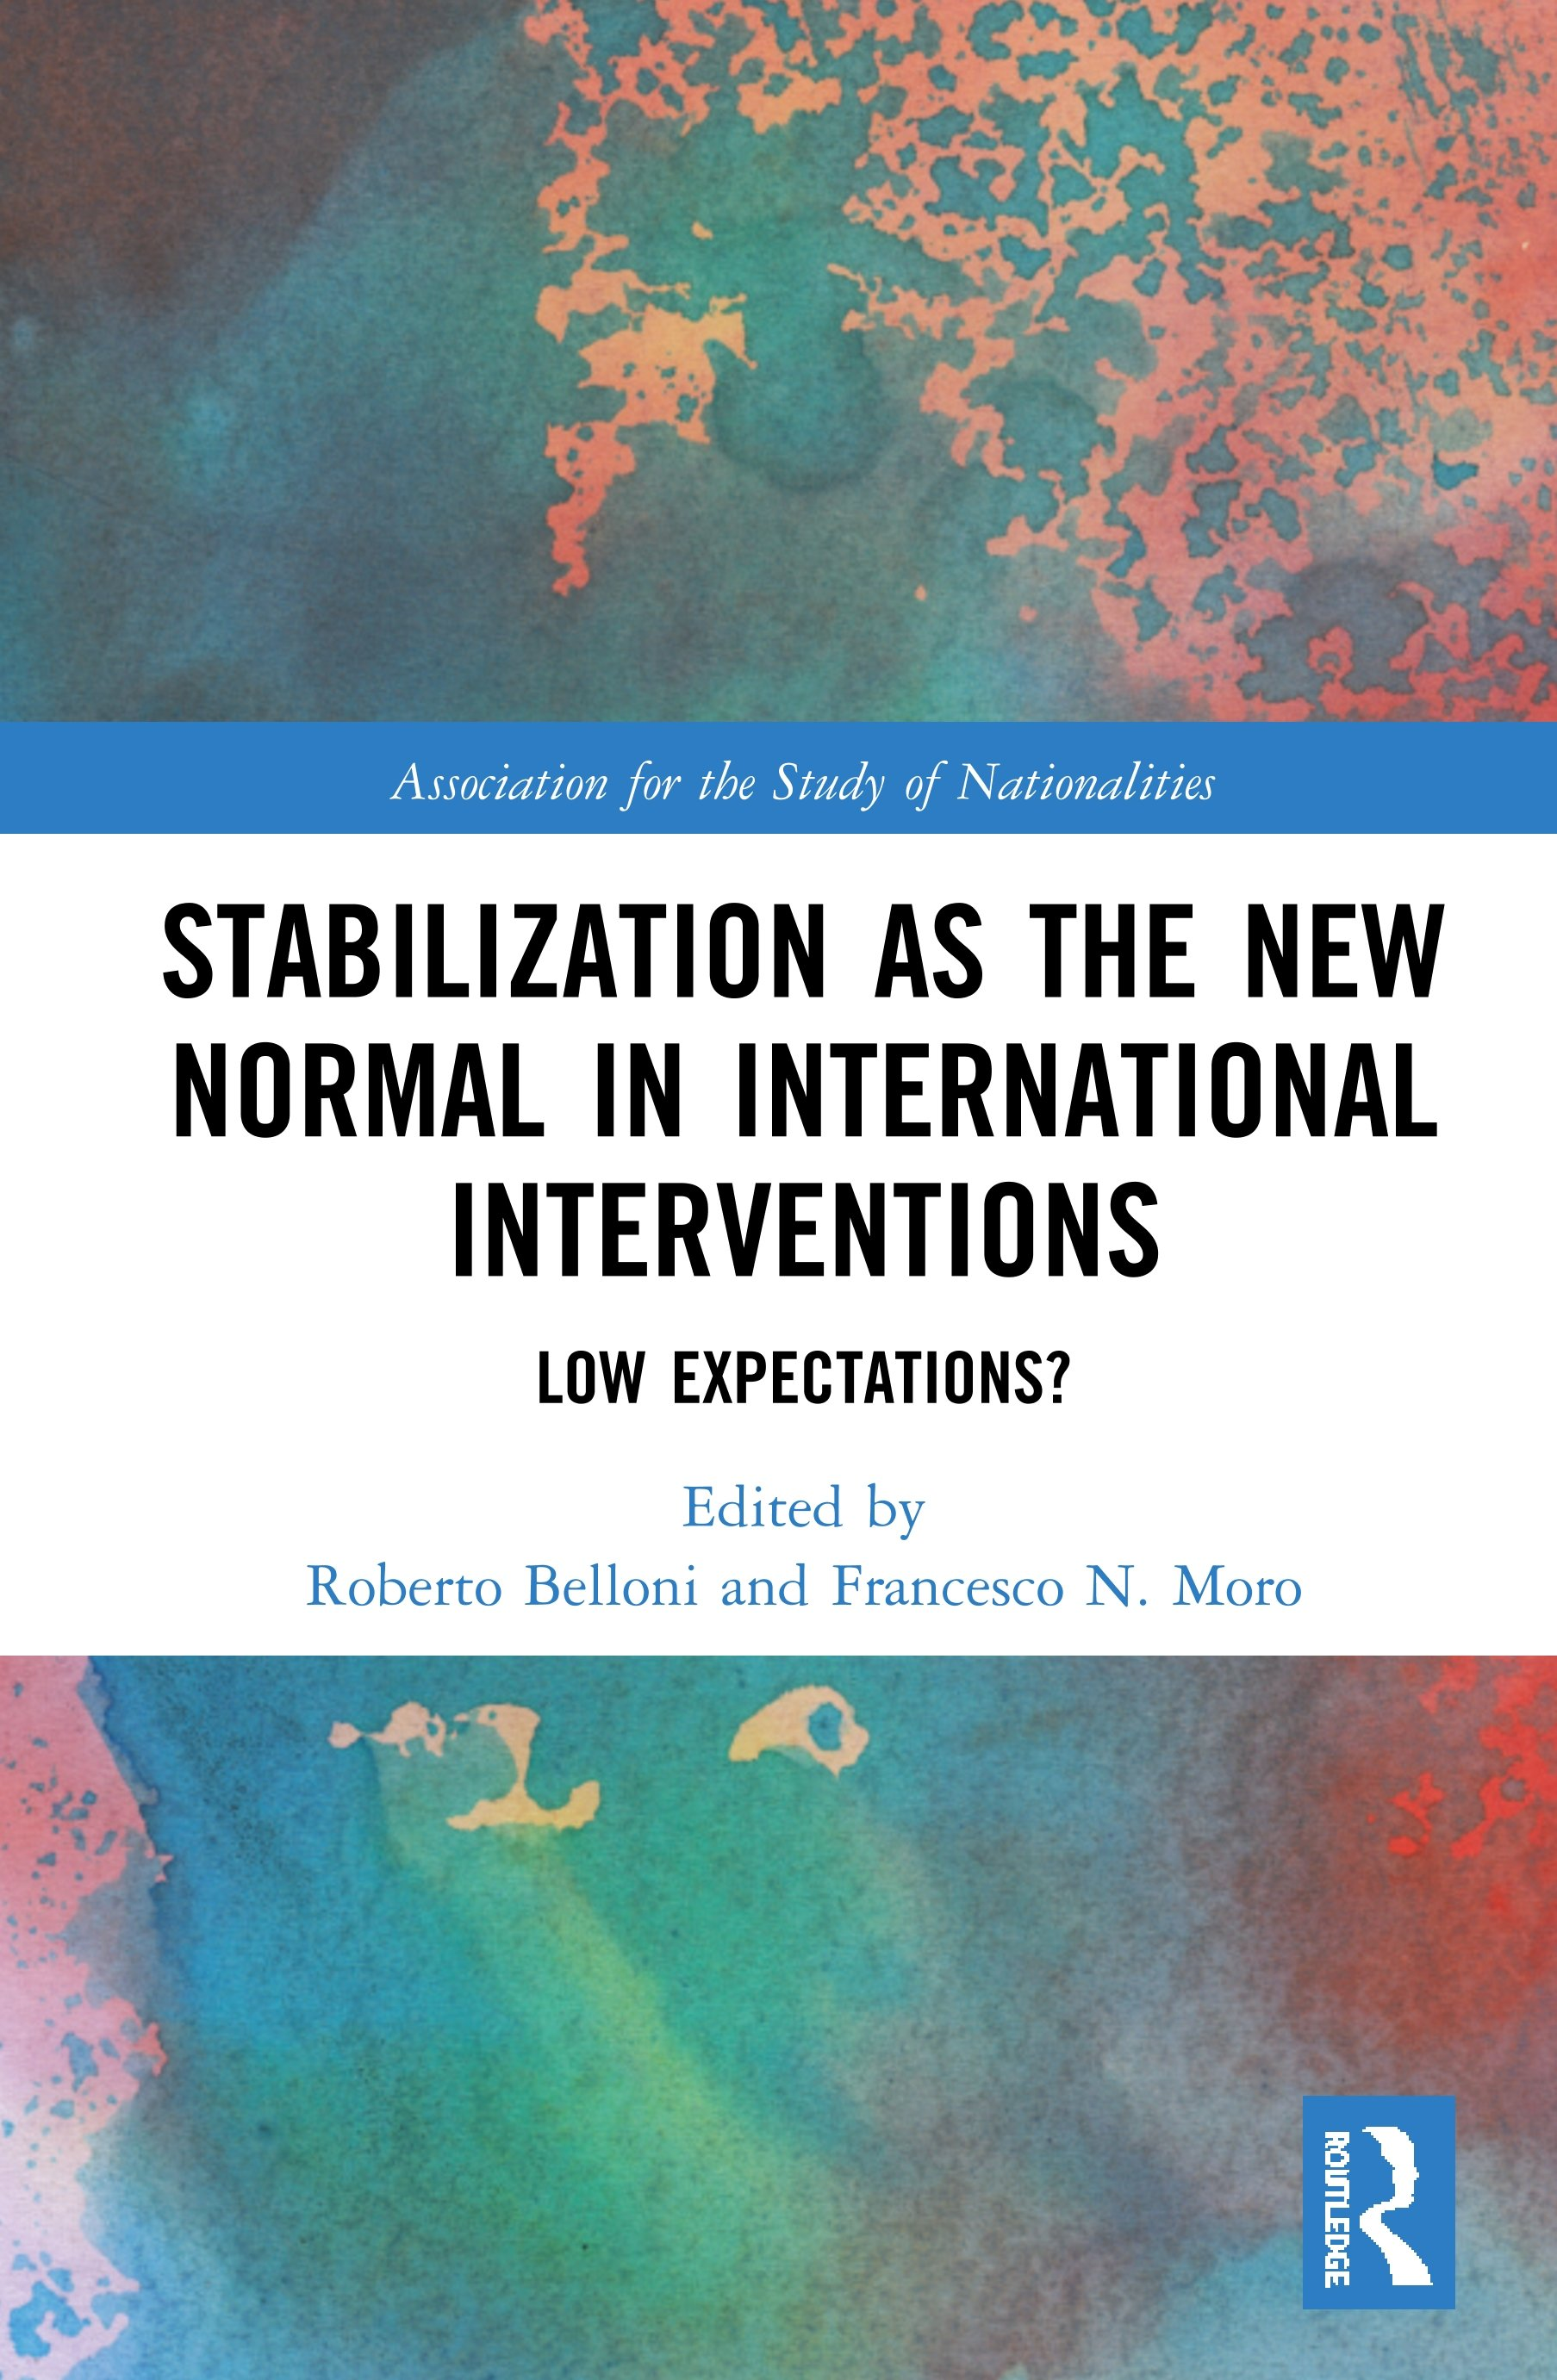 Stabilization as the New Normal in International Interventions: Low Expectations? book cover